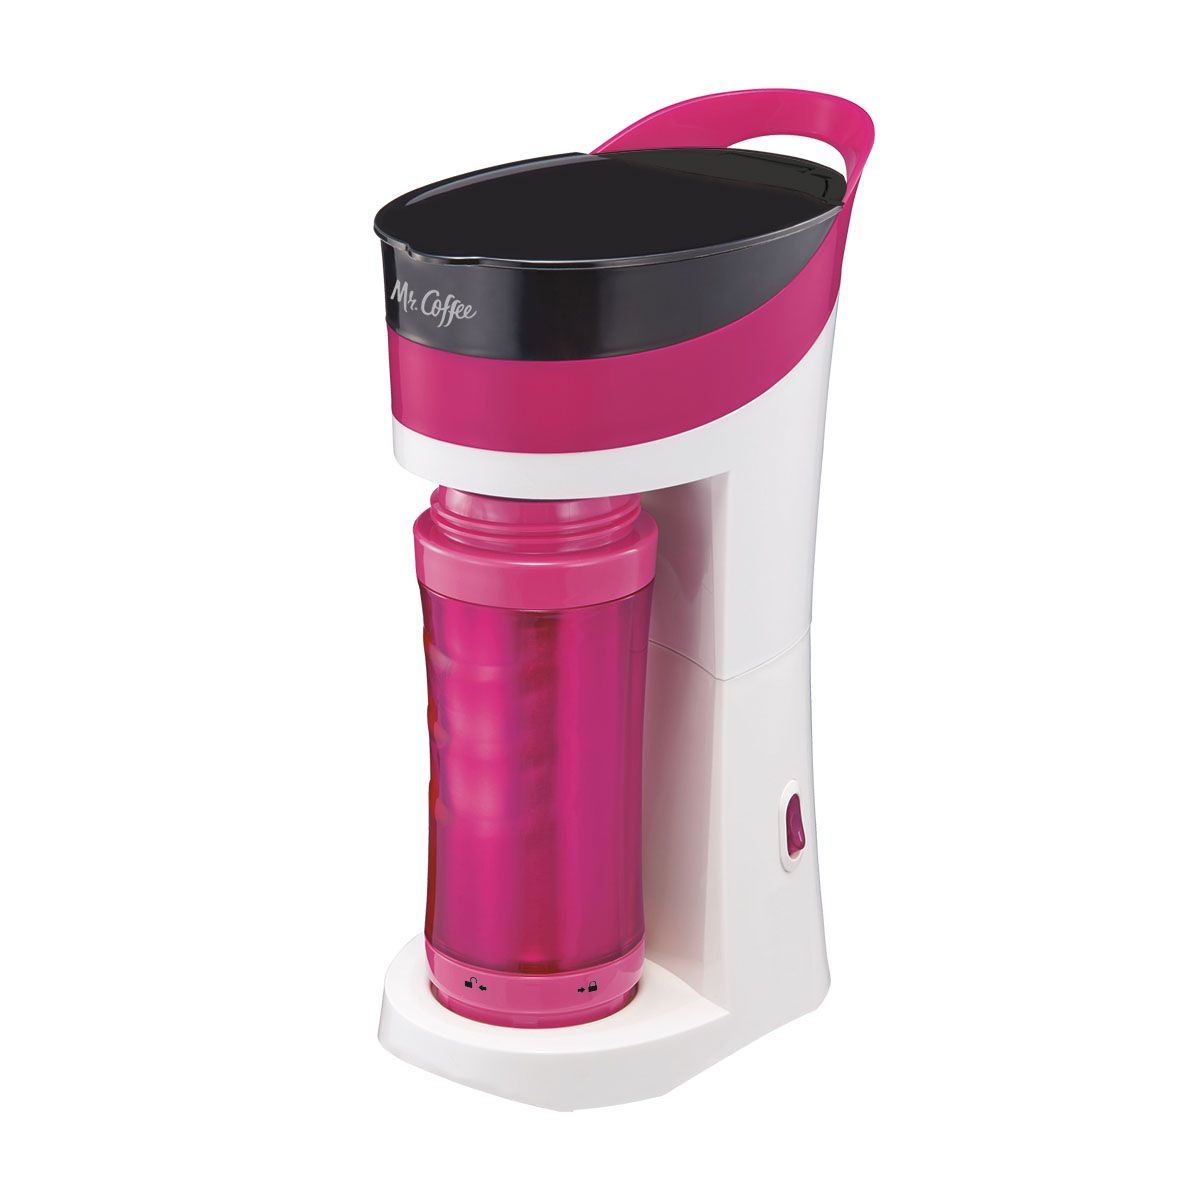 Mr. Coffee® Pour! Brew! Go! Personal Coffee Maker Pink